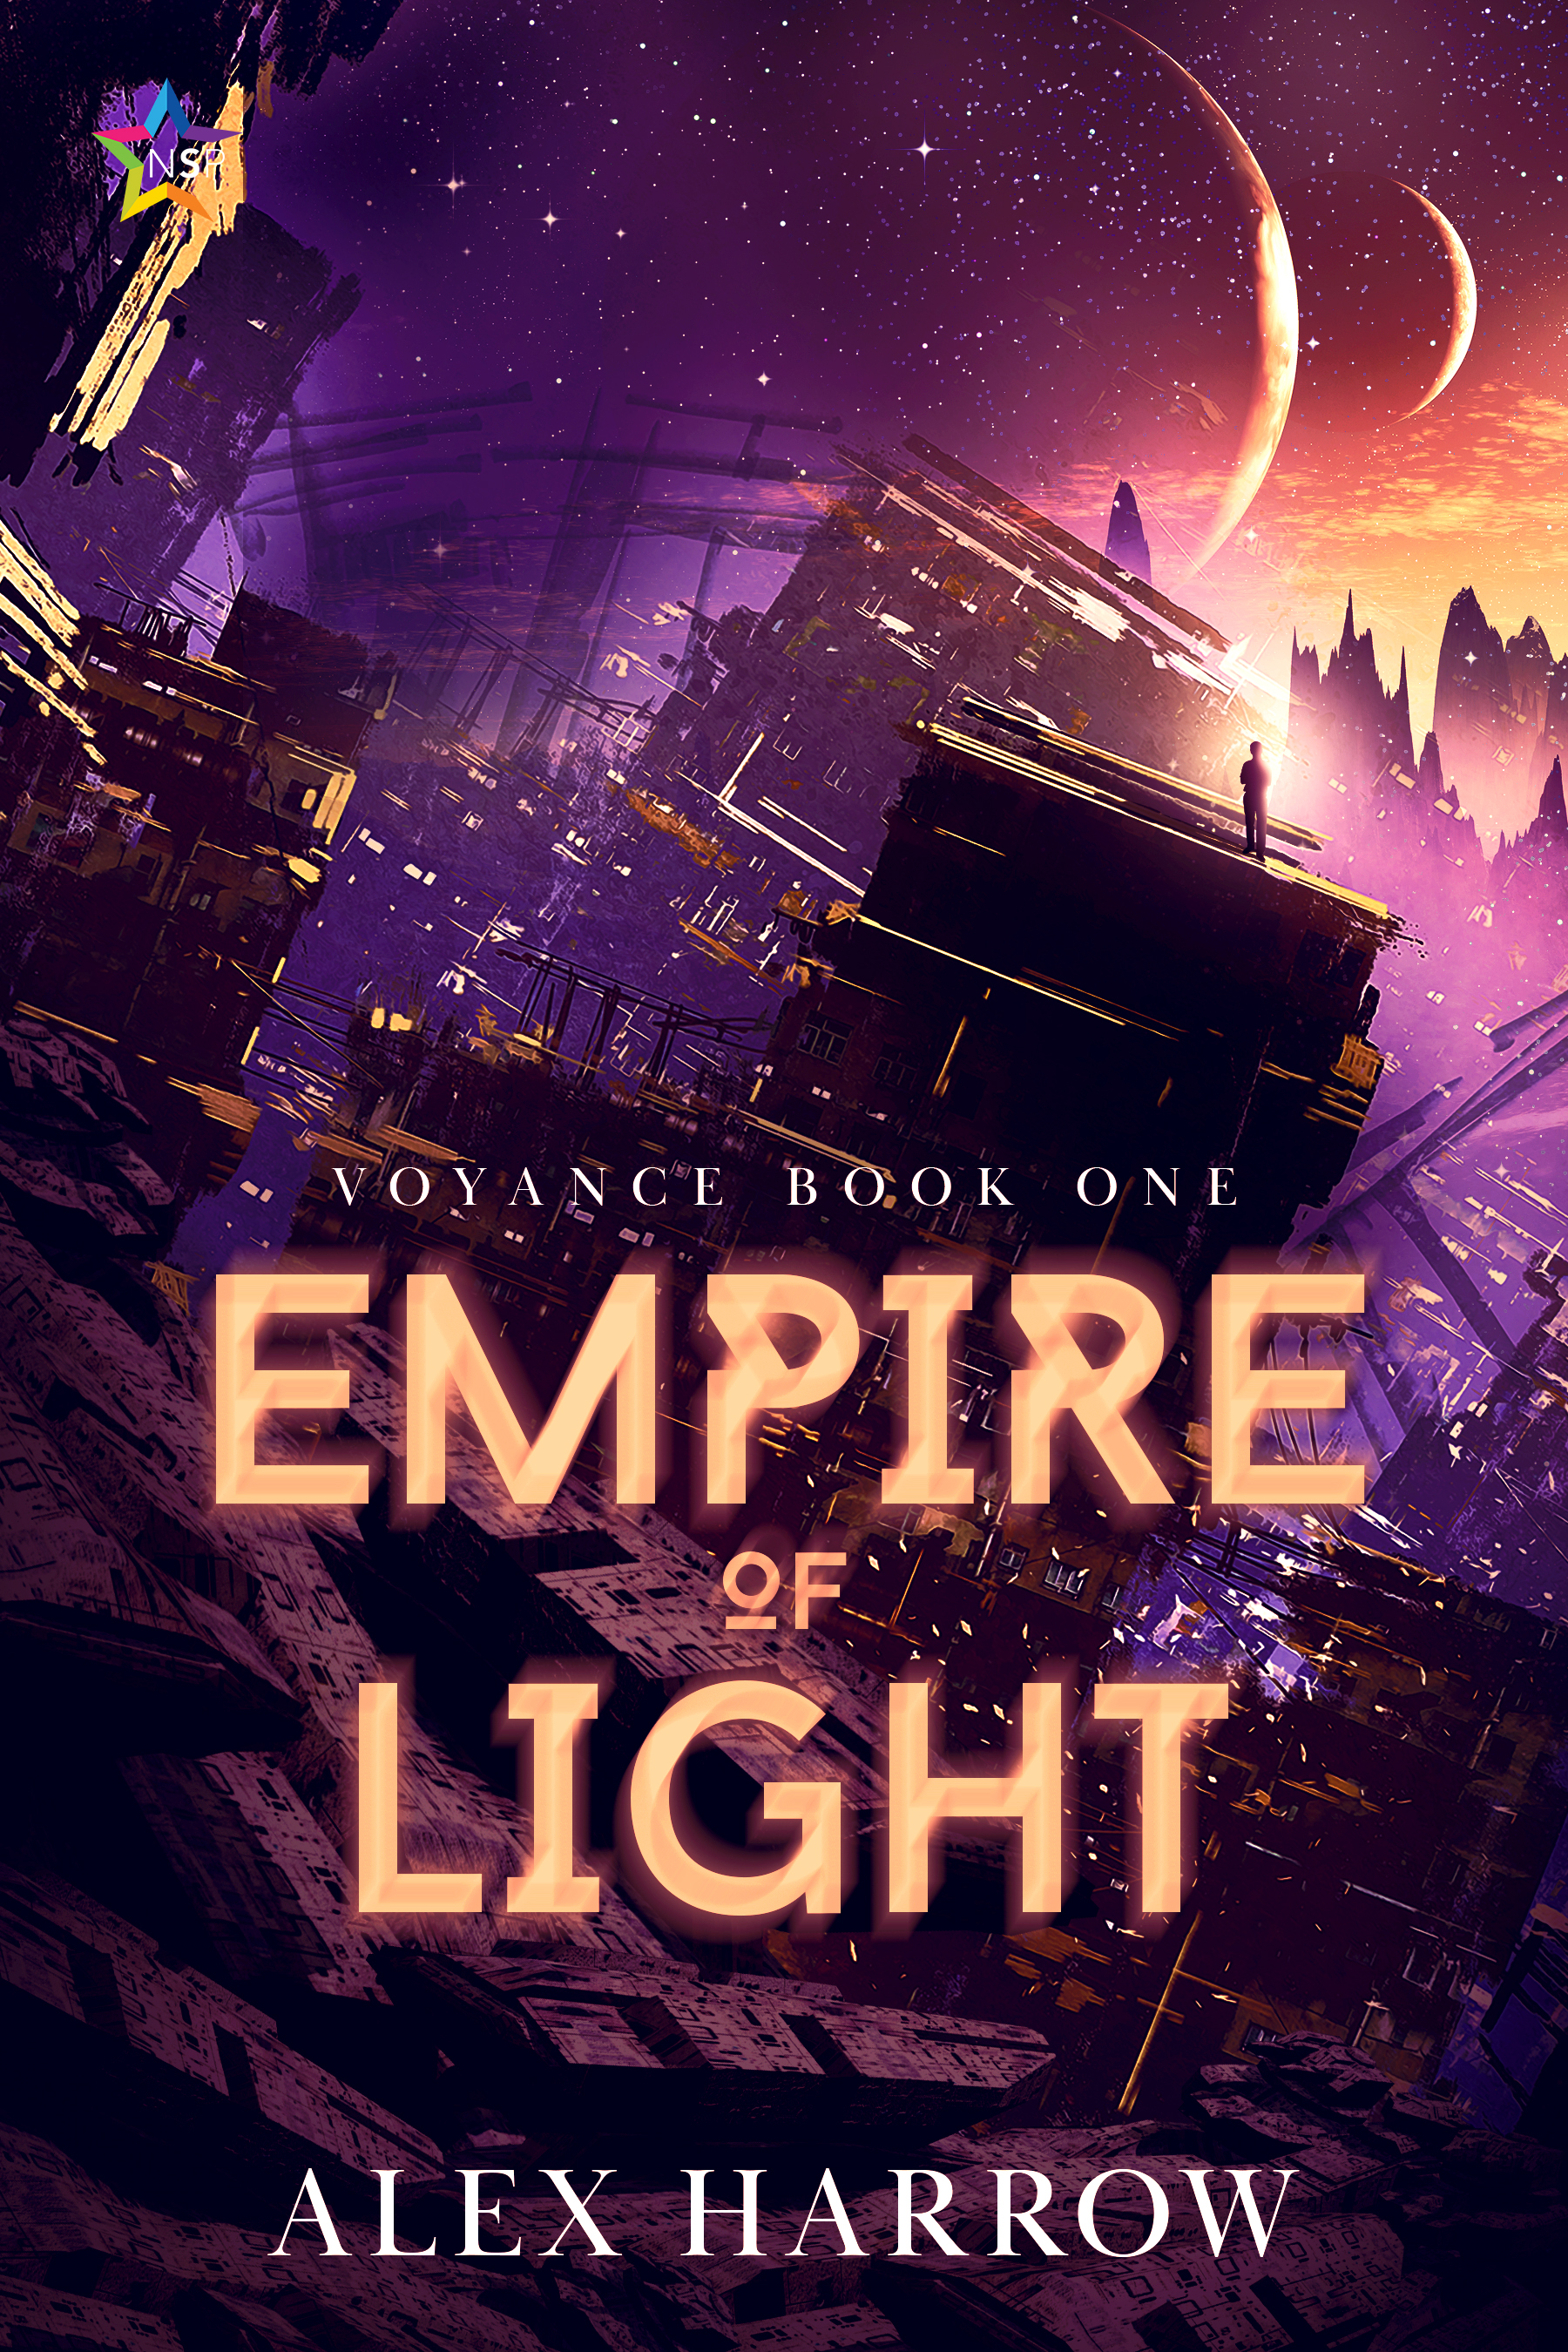 EmpireofLight-f.jpg